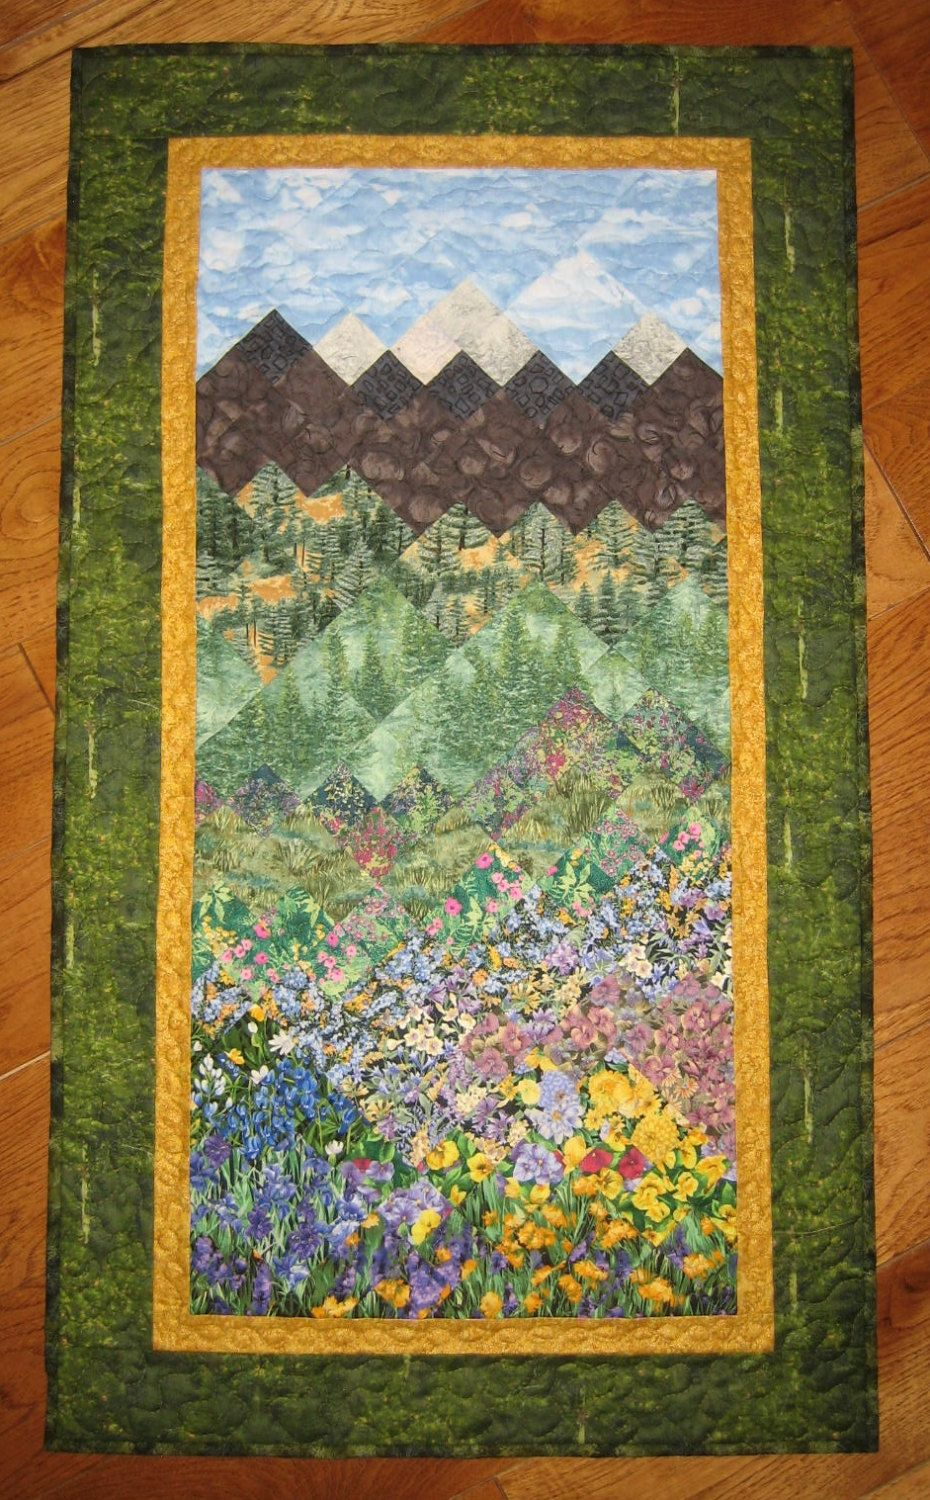 Art Quilt Fabric Wallhanging Pine Trees Mountain Flowers Handmade Quilted Landscape Quilt Landscape Art Quilts Art Quilts Landscape Quilts